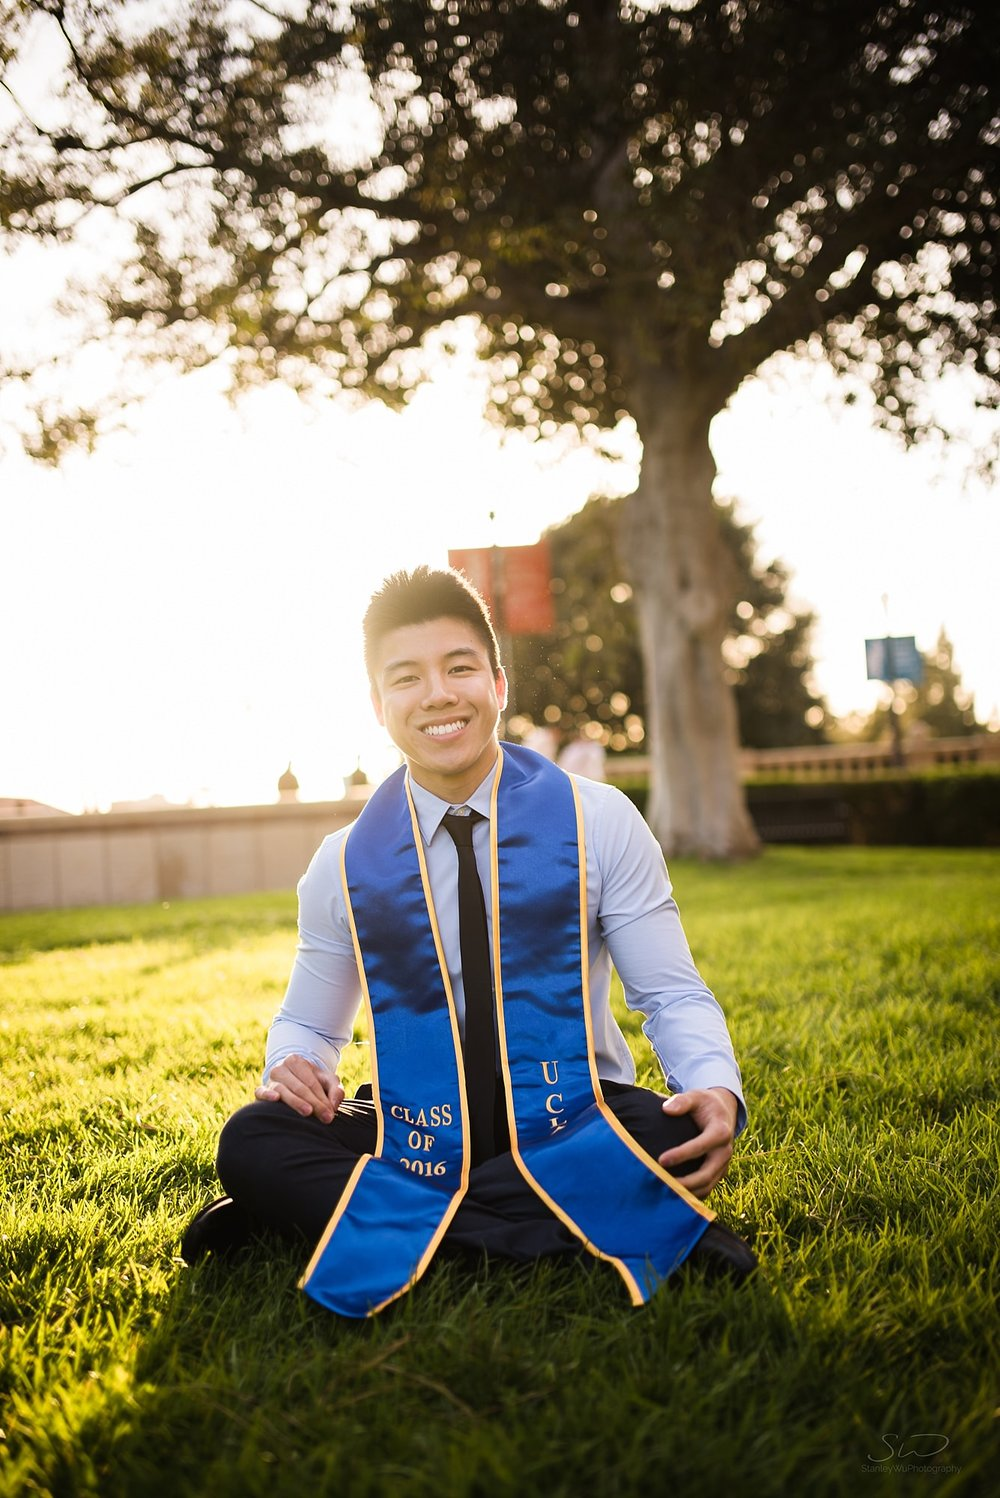 graduation senior portrait of a guy smiling sitting cross legged on grass in front of a tree at ucla in los angeles